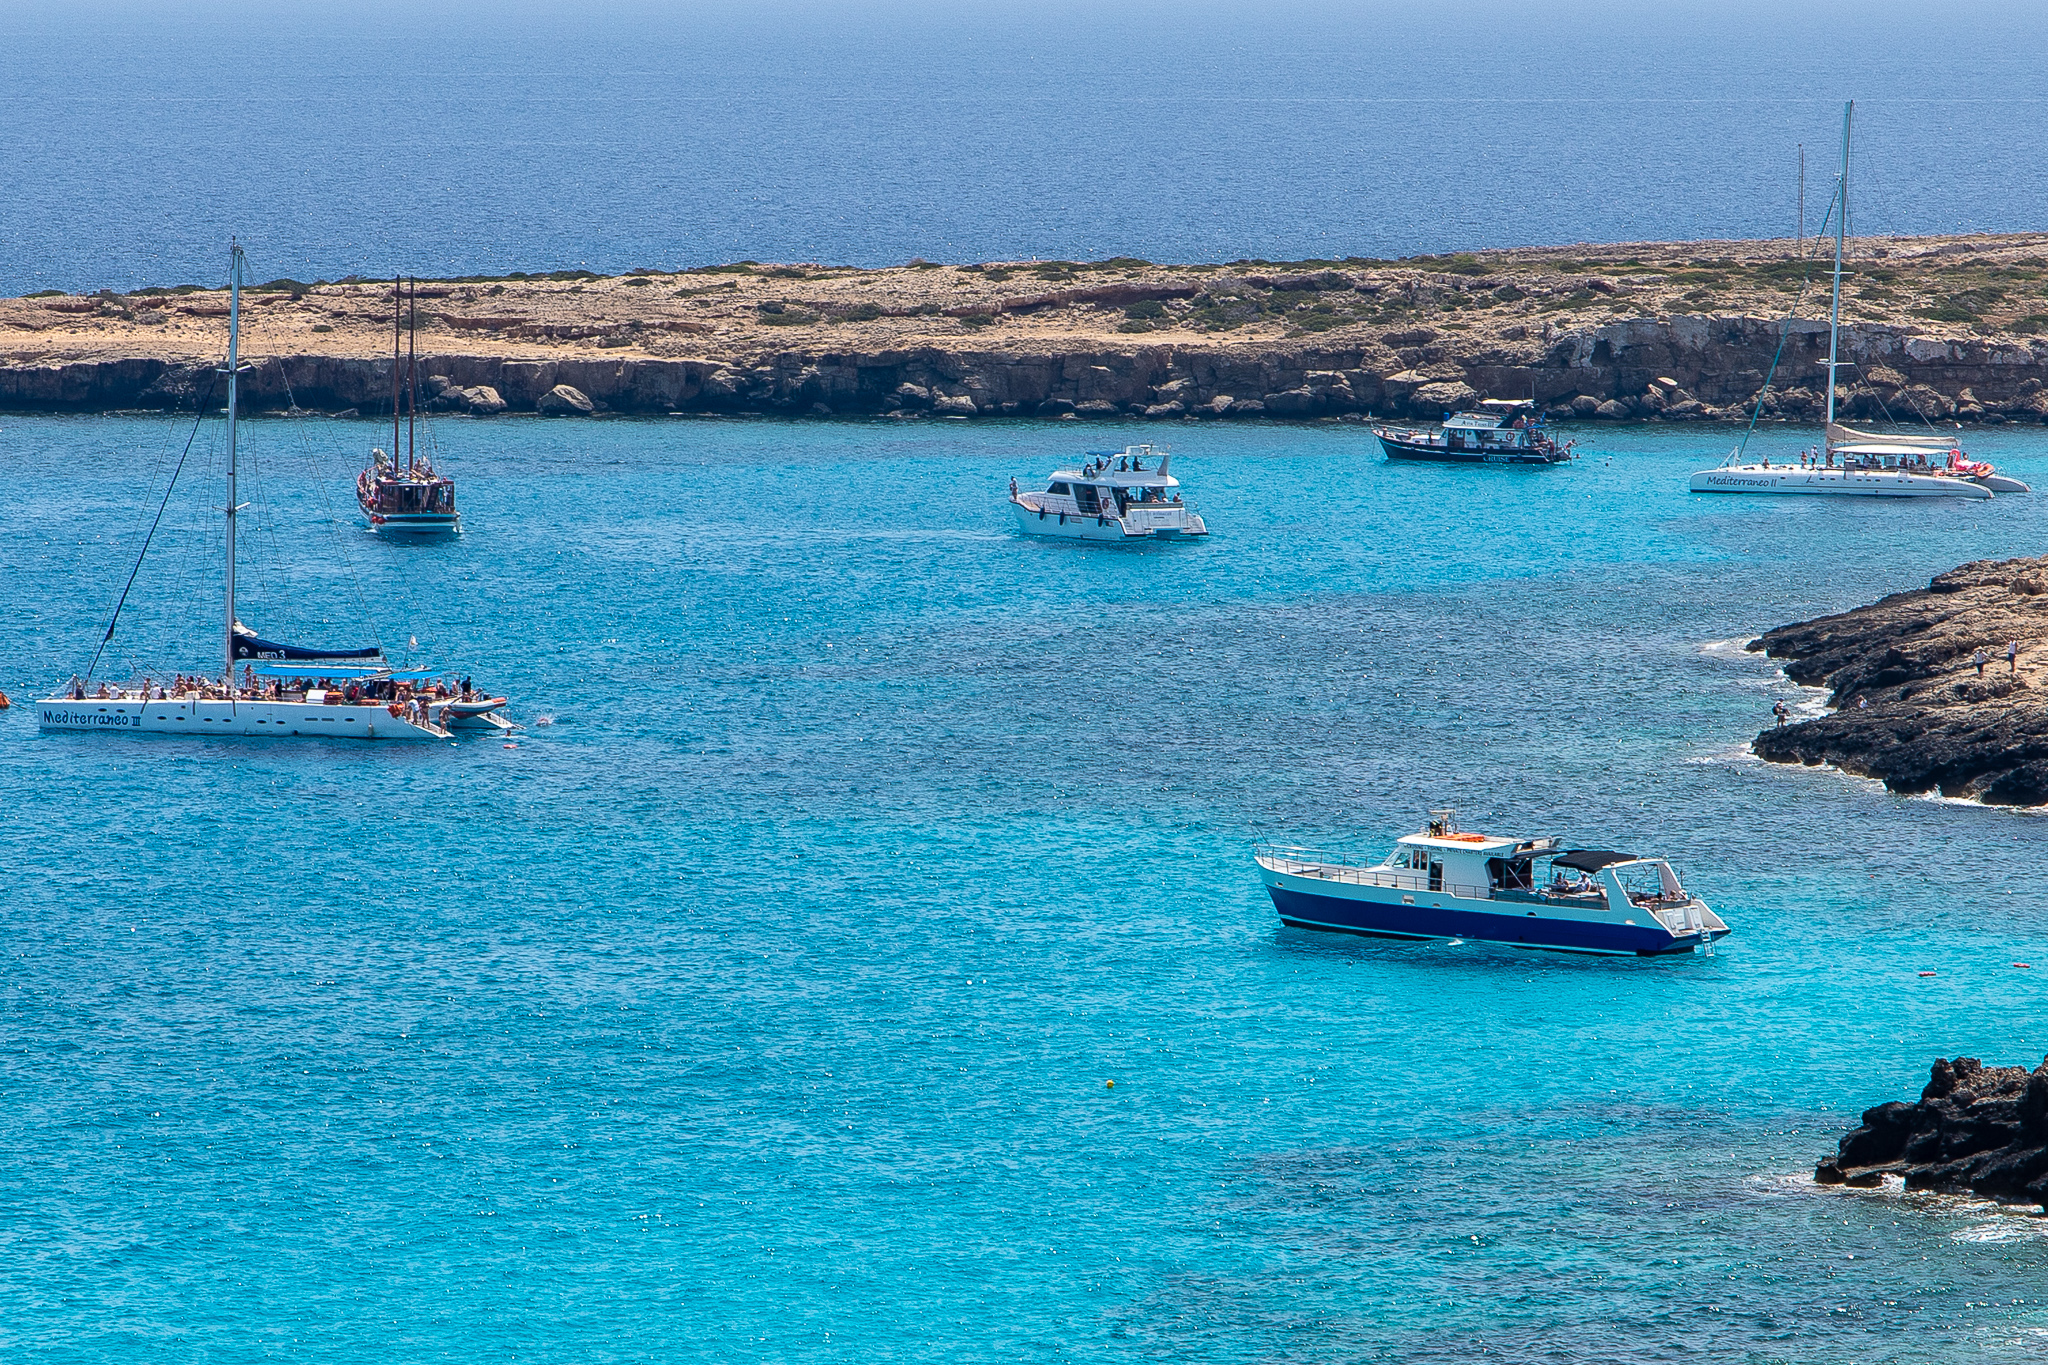 An extremely popular snorkelling/swimming spot for all the tourist boats